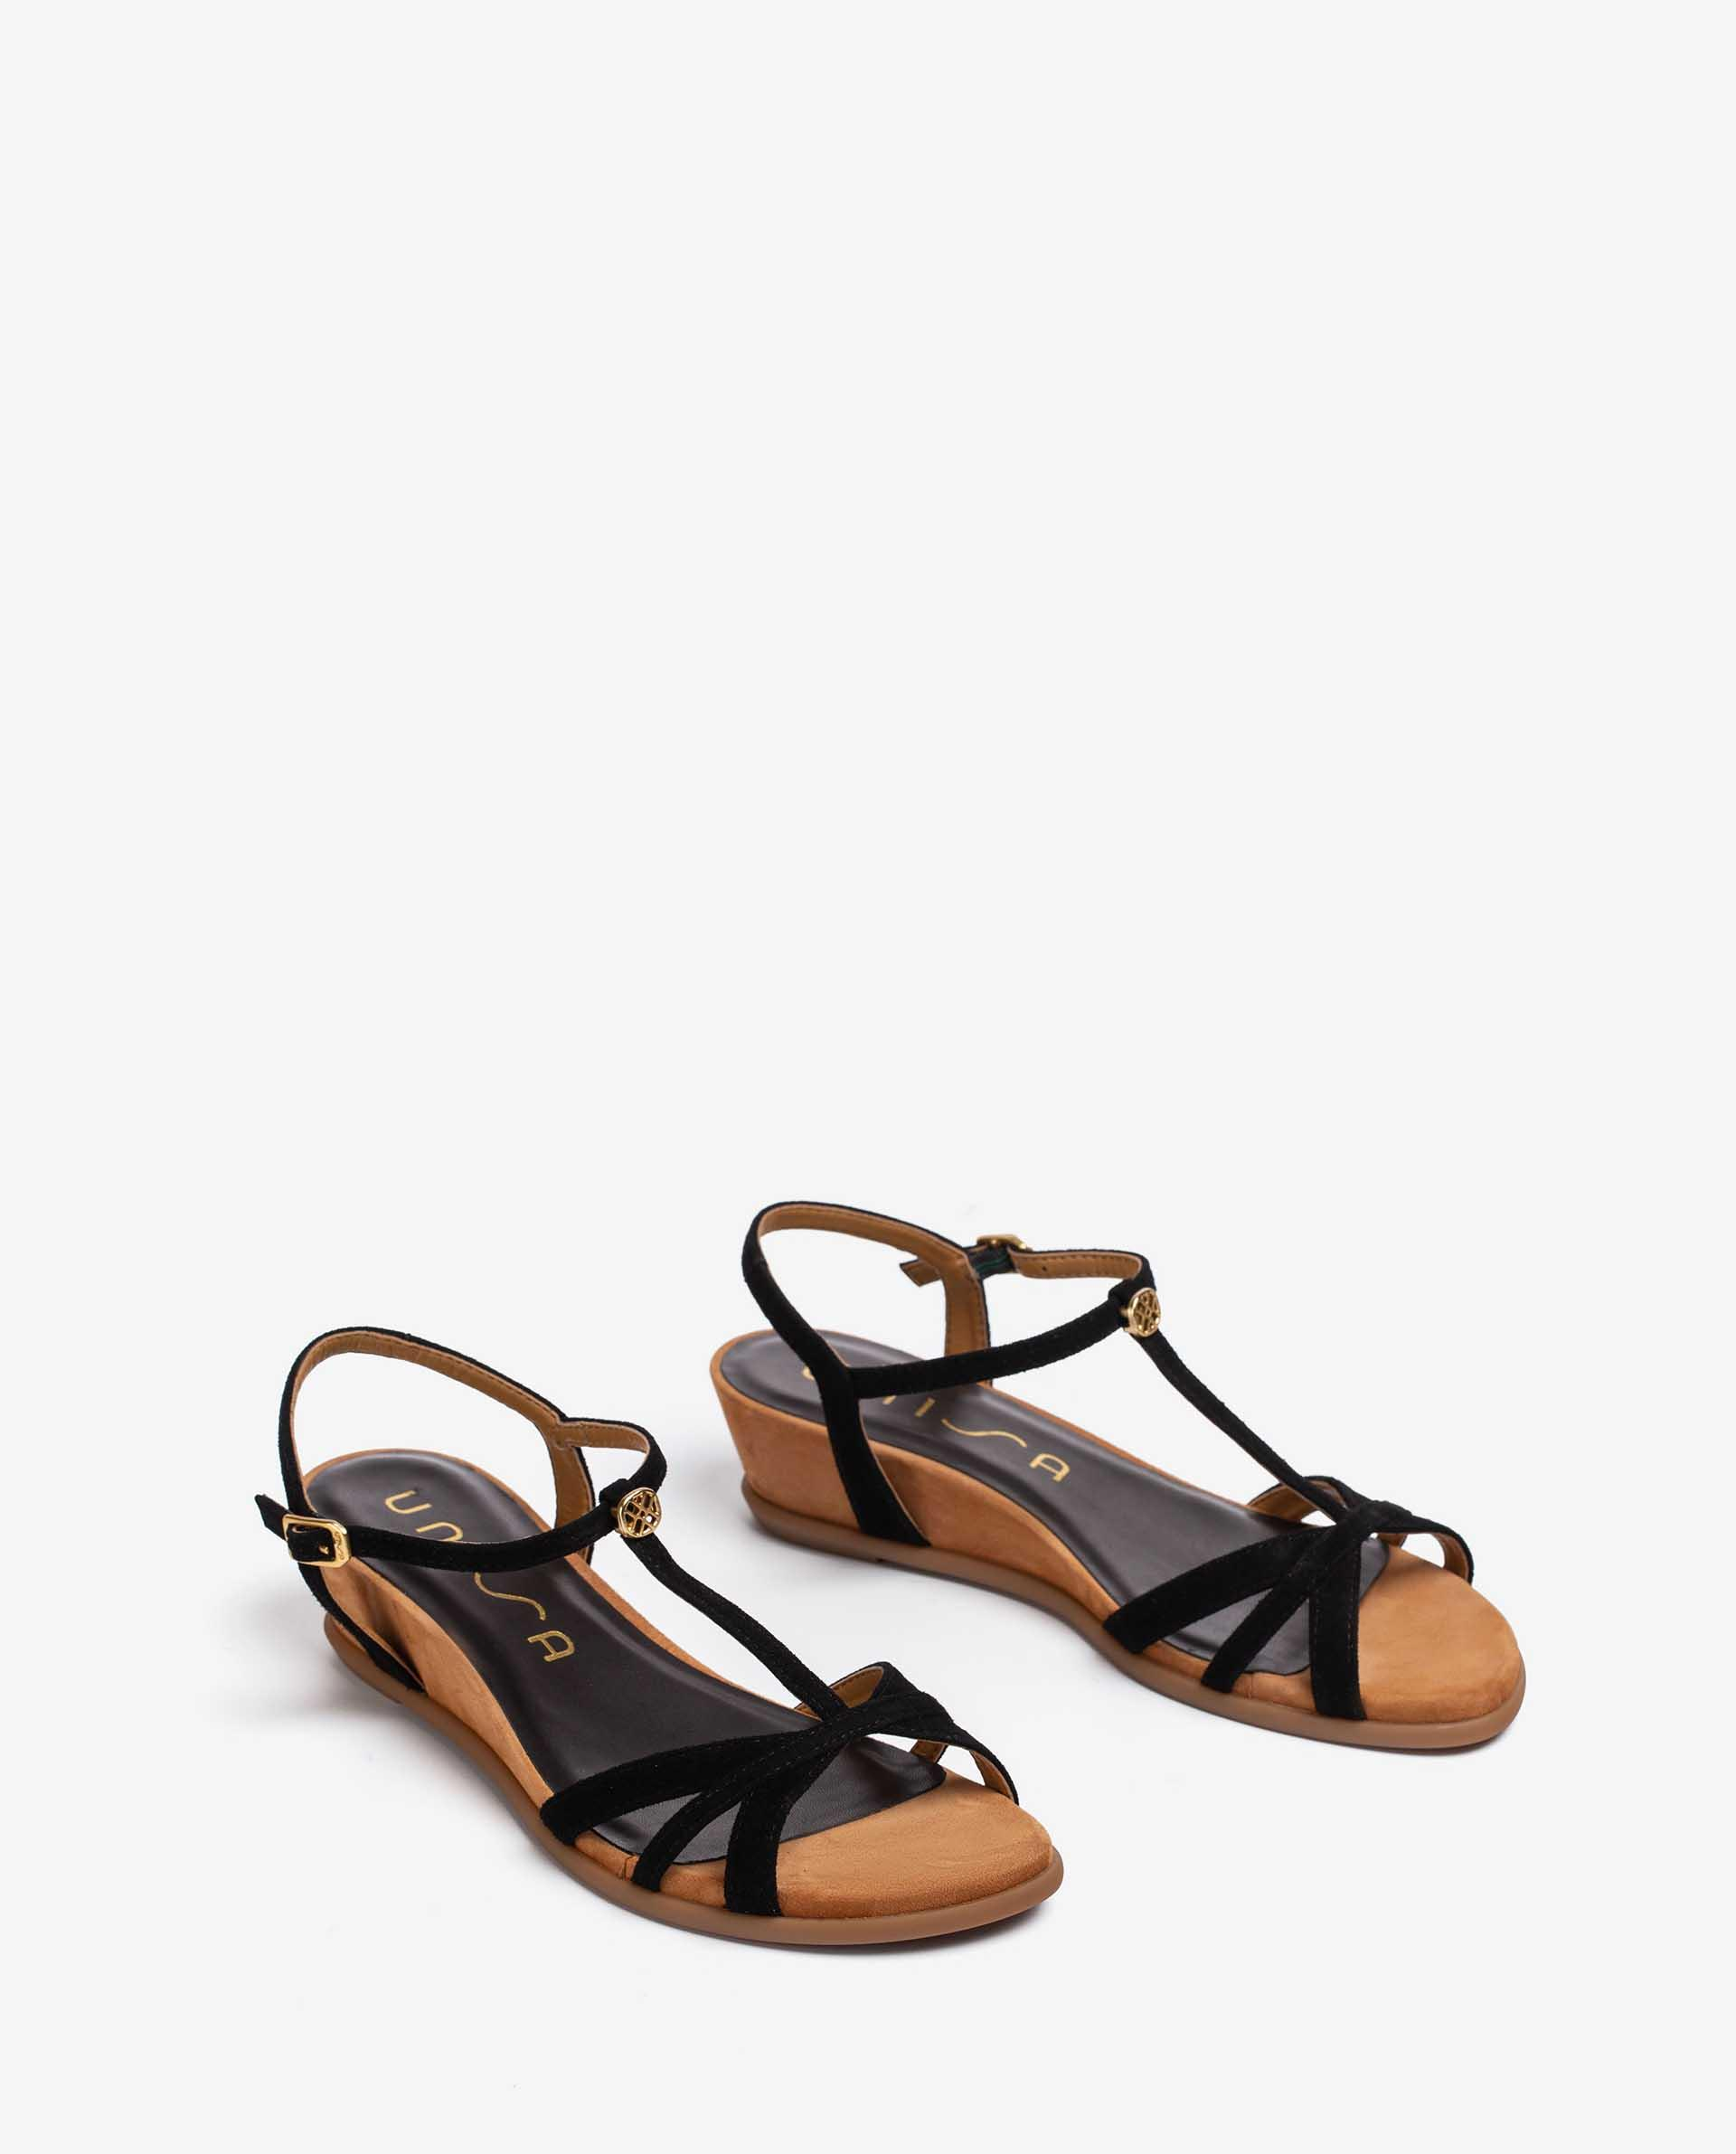 Unisa Sandalias BINAR_21_KS black